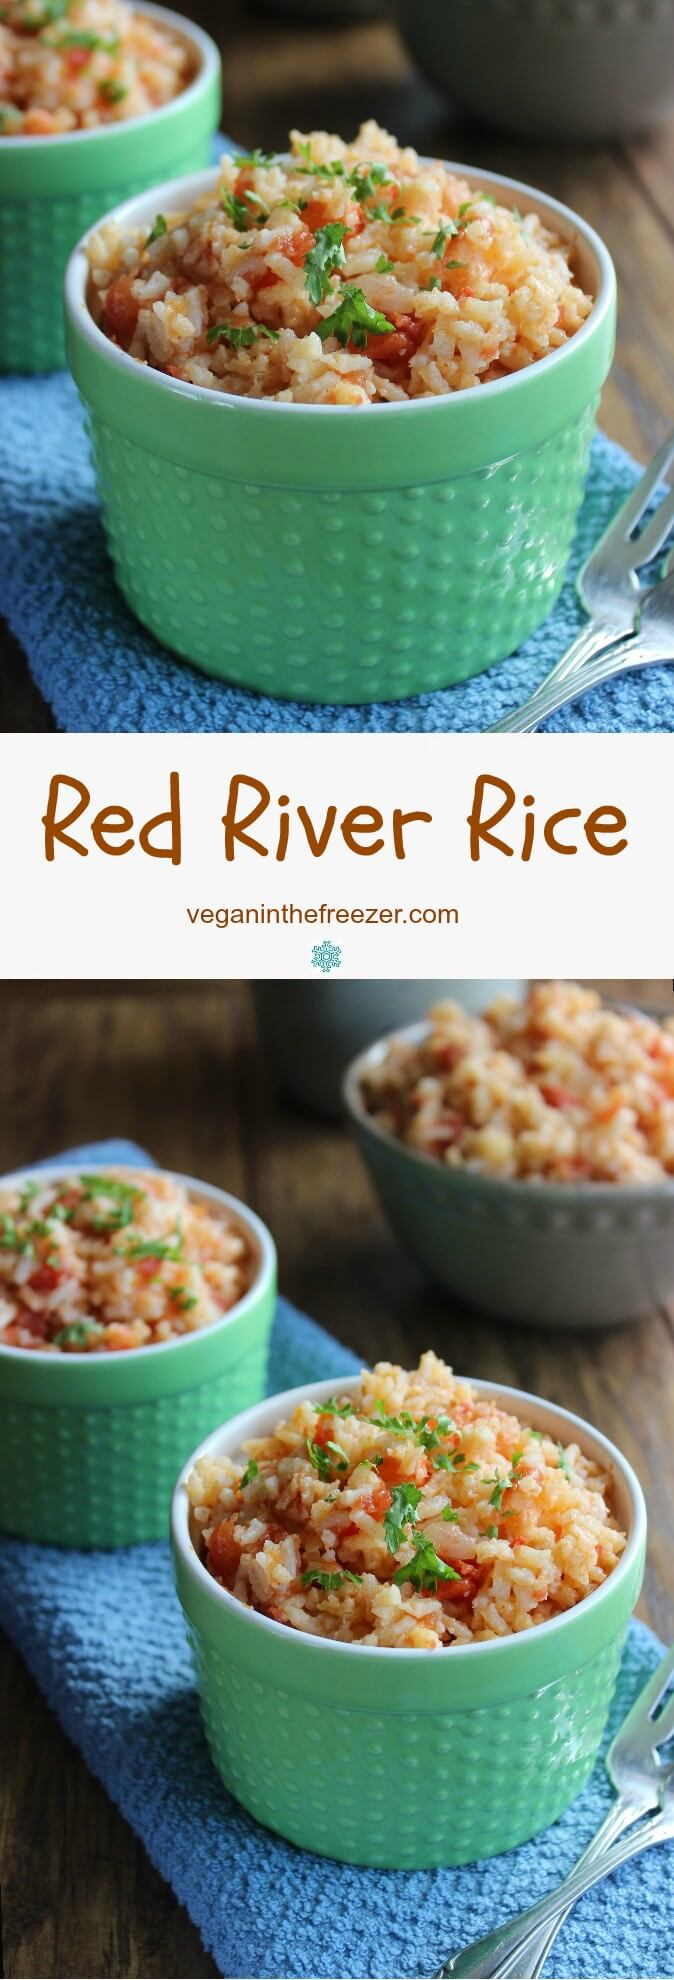 Red River Rice is simple and versatile and something the whole family will enjoy.  After the rice is complete you can even toss in sauteed zukes.